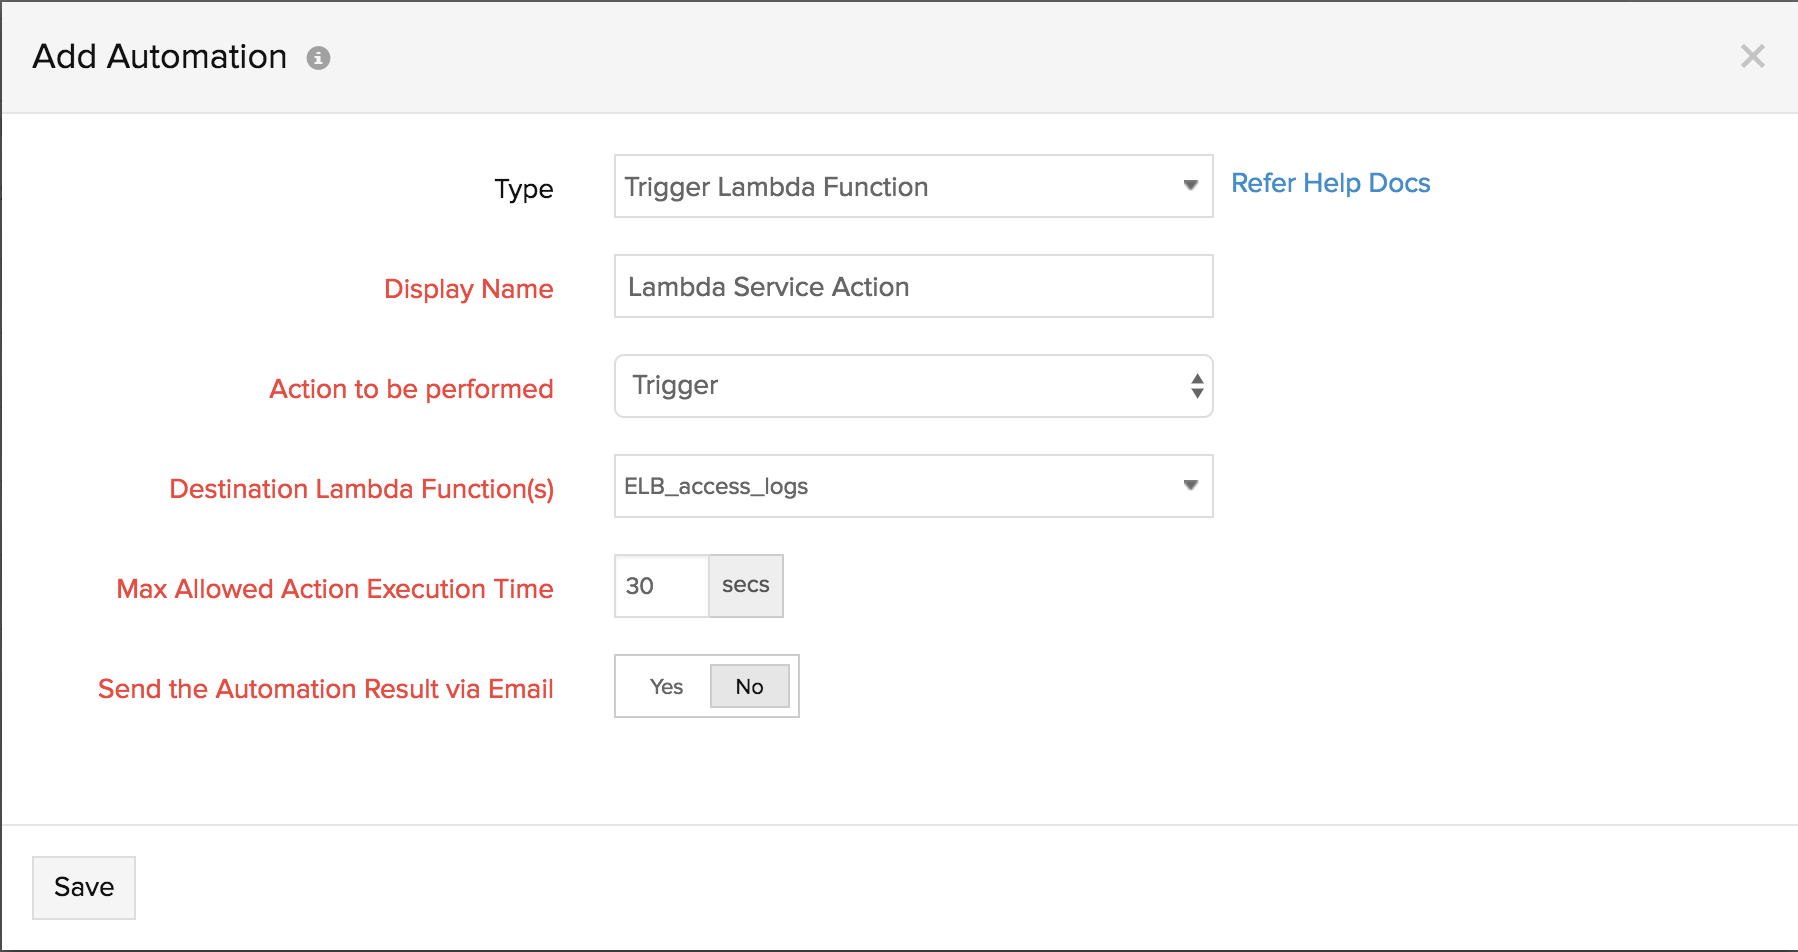 Creating an action profile to Lambda actions